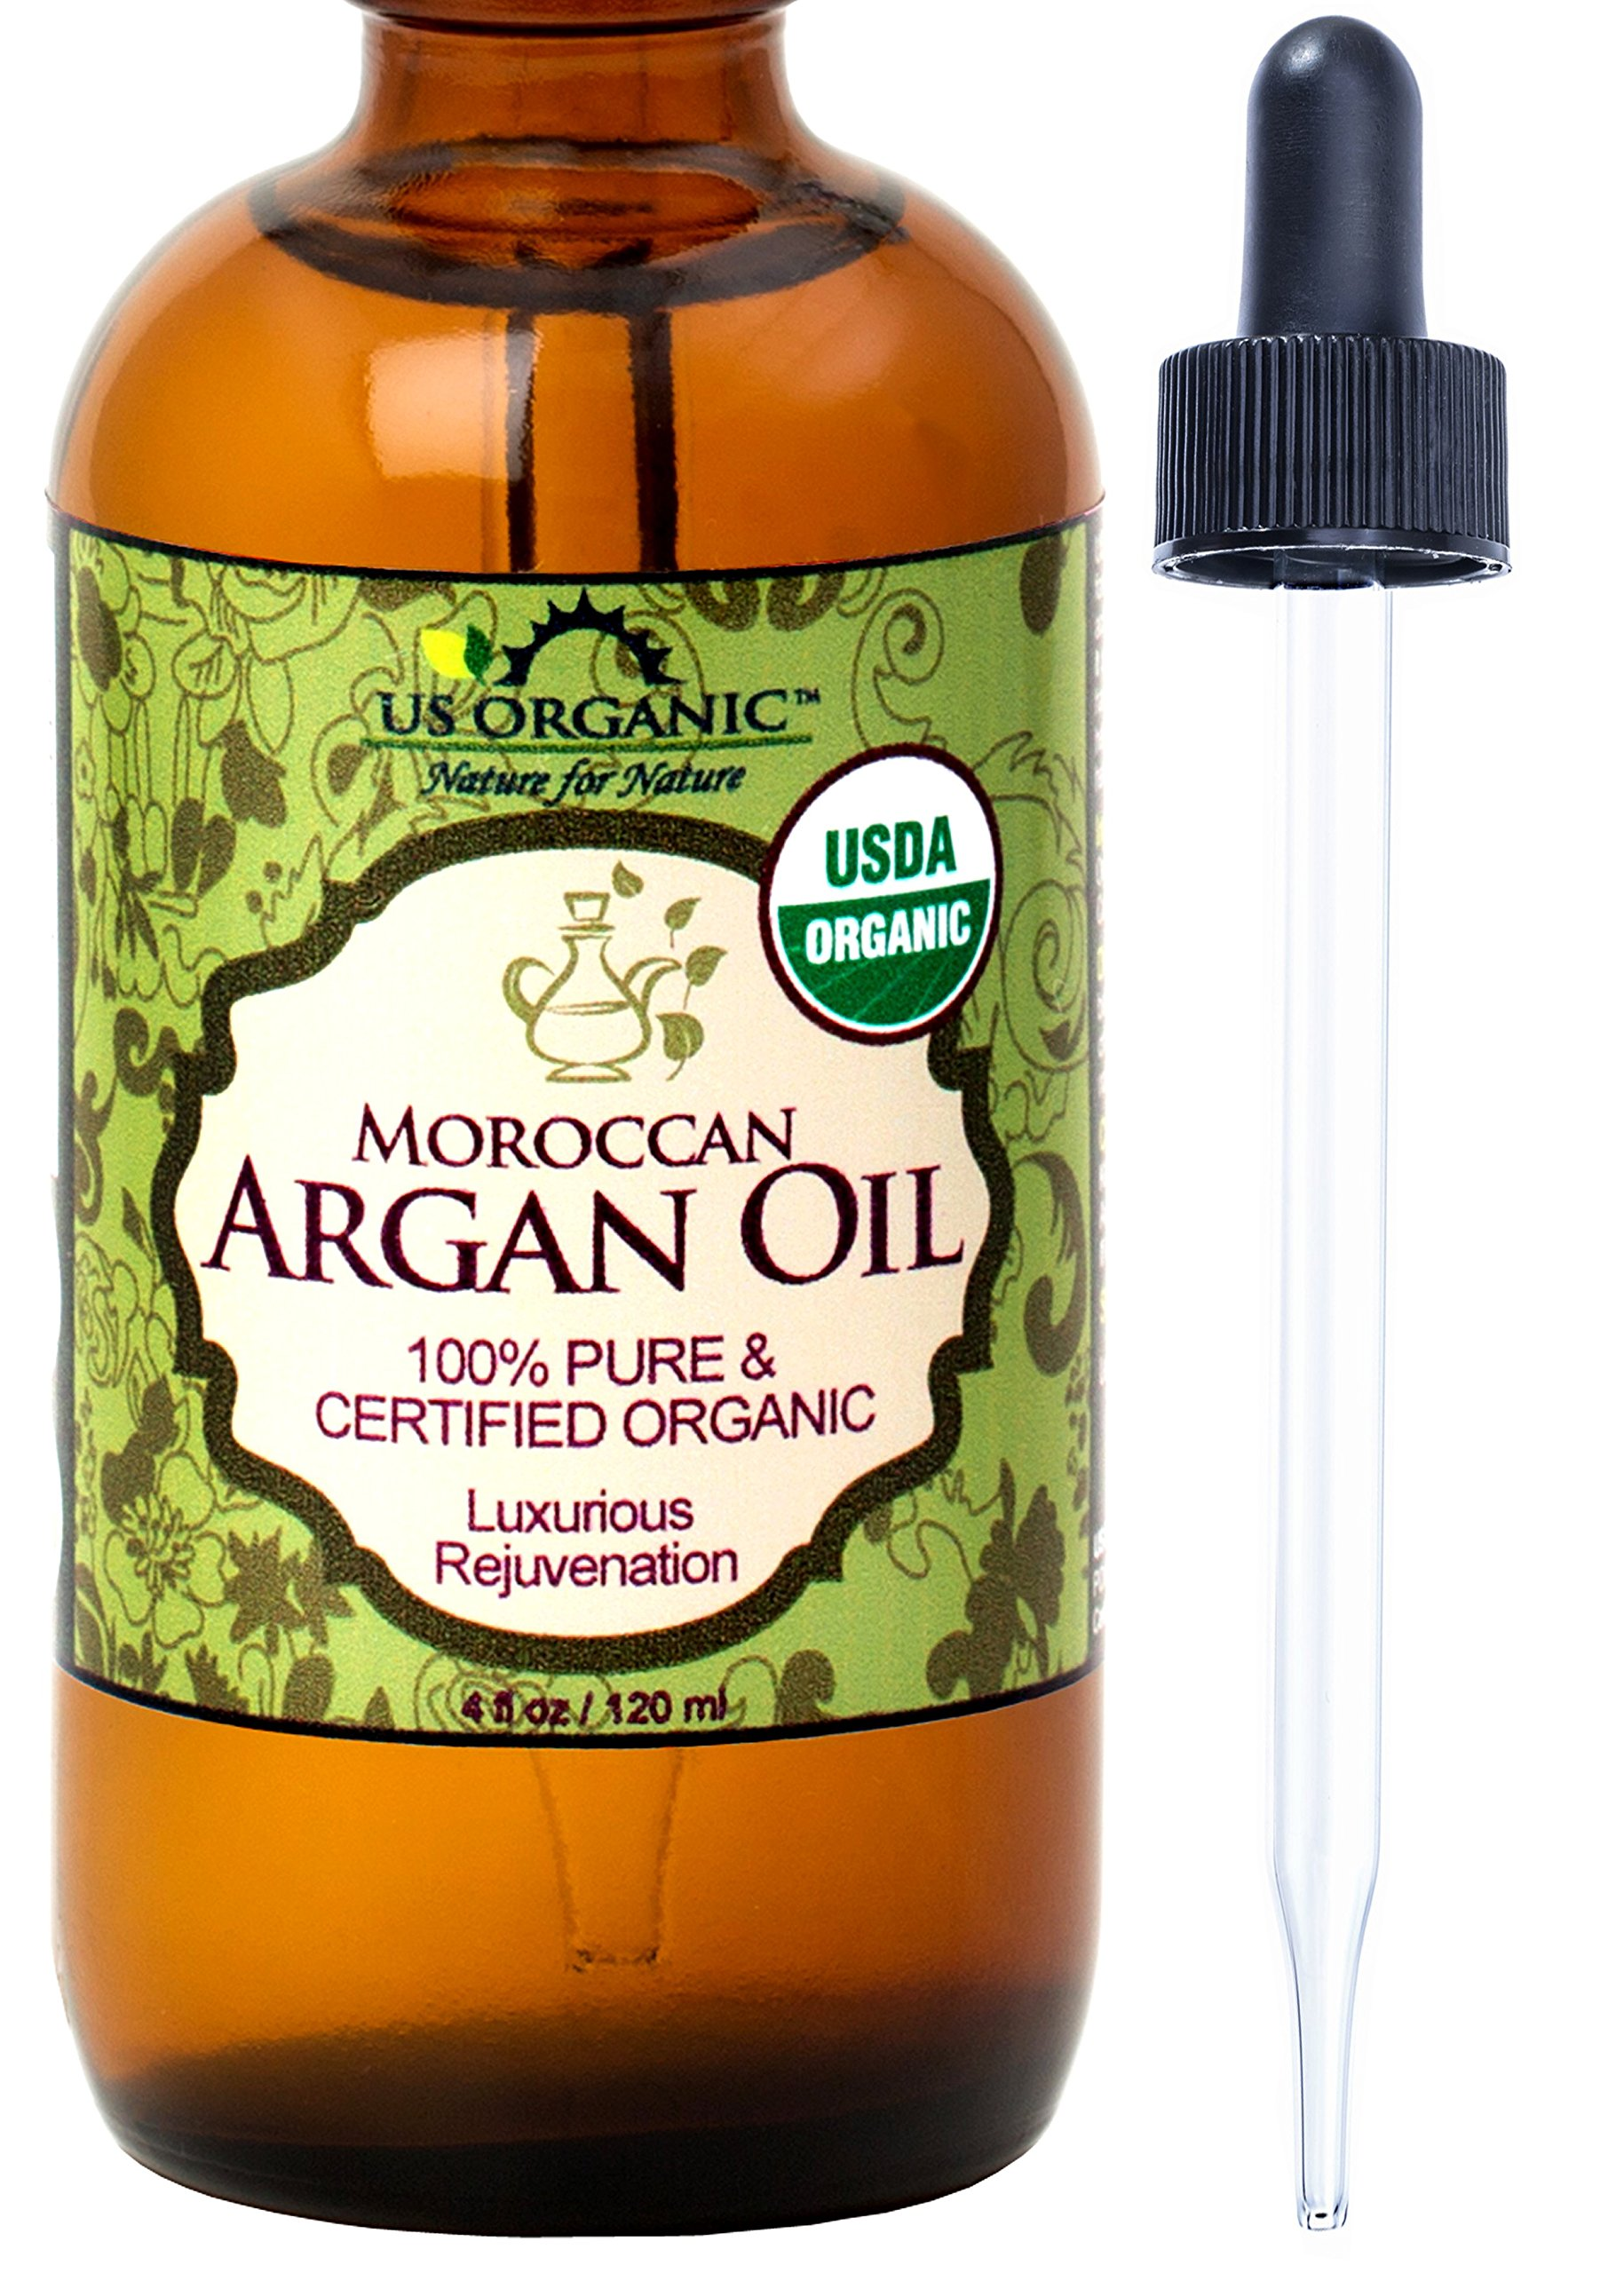 US Organic Moroccan Argan Oil, USDA Certified Organic,100% Pure & Natural, Cold Pressed Virgin, Unrefined, 4 Ounce in Amber Glass Bottle with Glass Eye Dropper for Easy Application